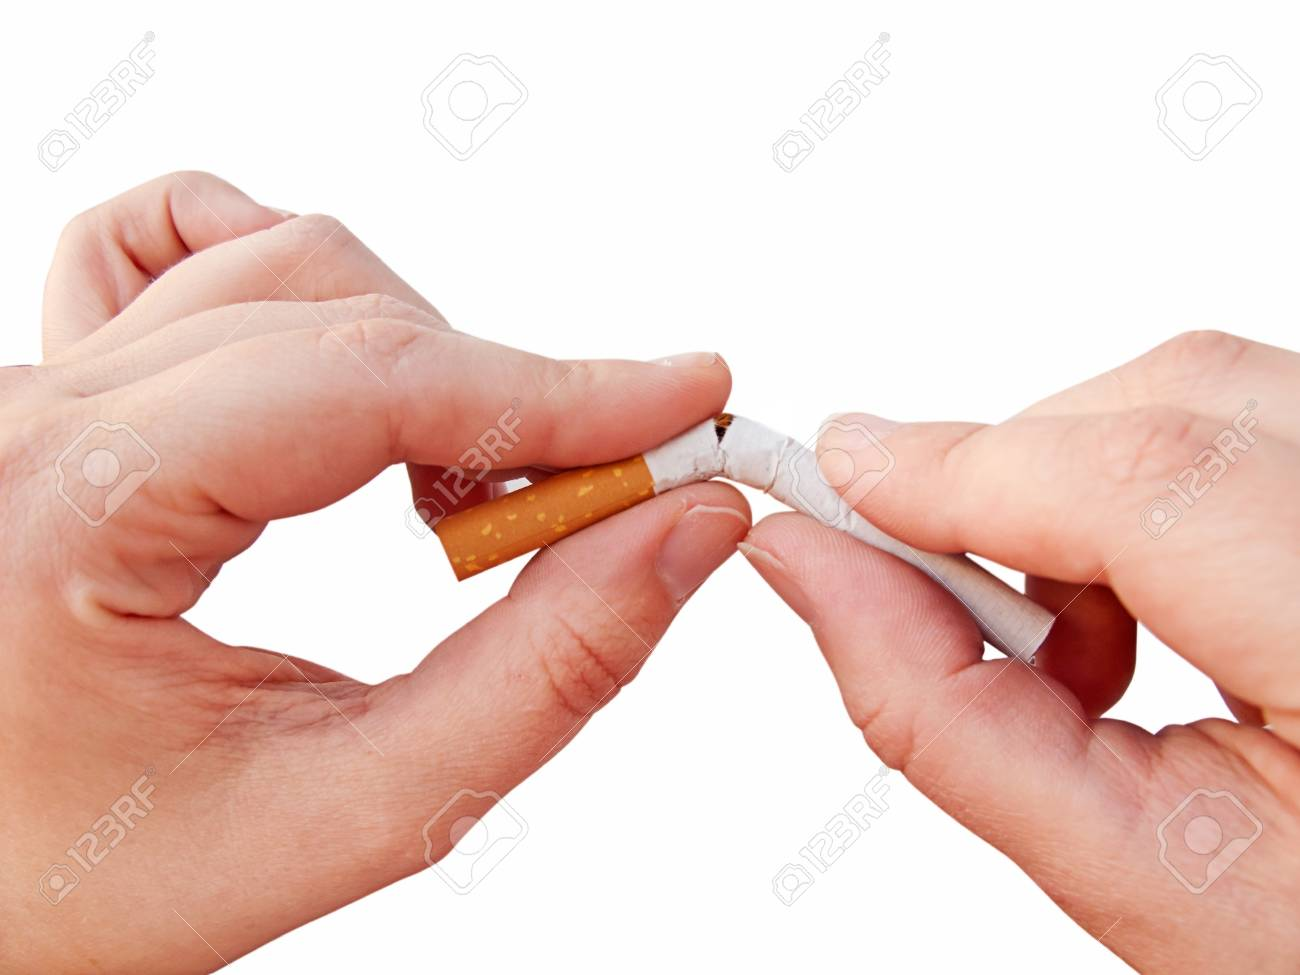 Hands breaking a cigarette, isolated in white Stock Photo - 11864251